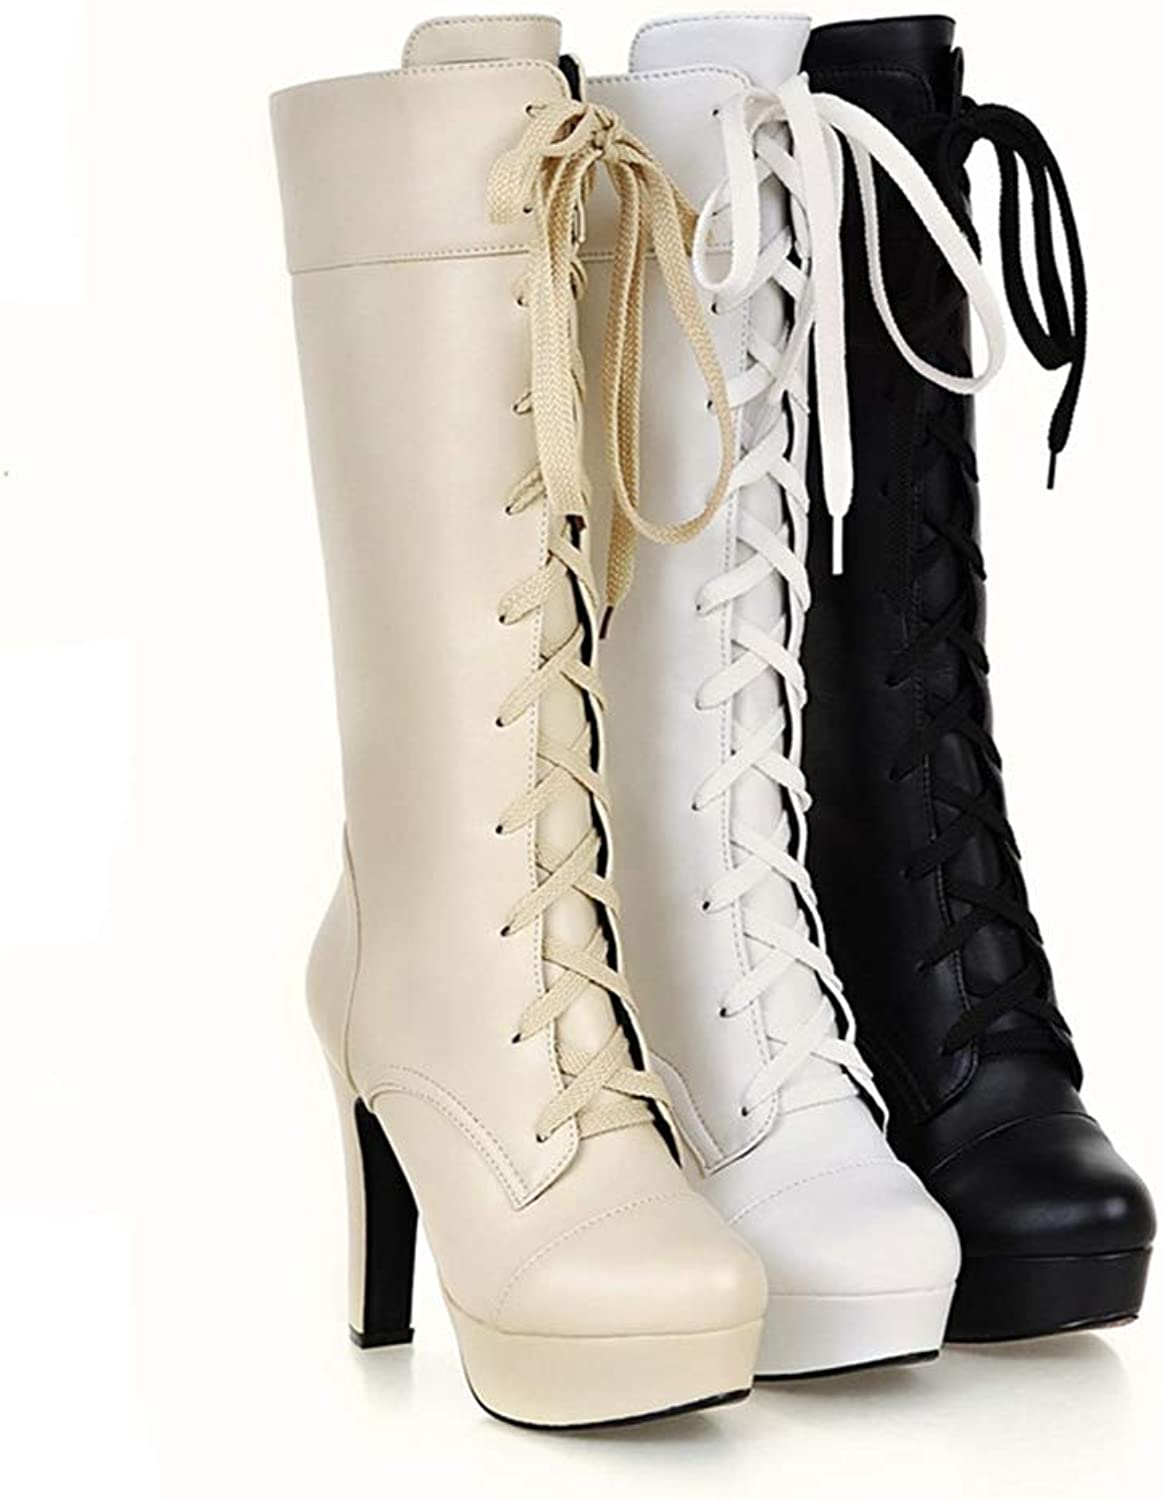 T-JULY Women's Mid Calf Boots for Women in Spring Autumn Winter High Heels Boots Fashion Contracted Platform shoes